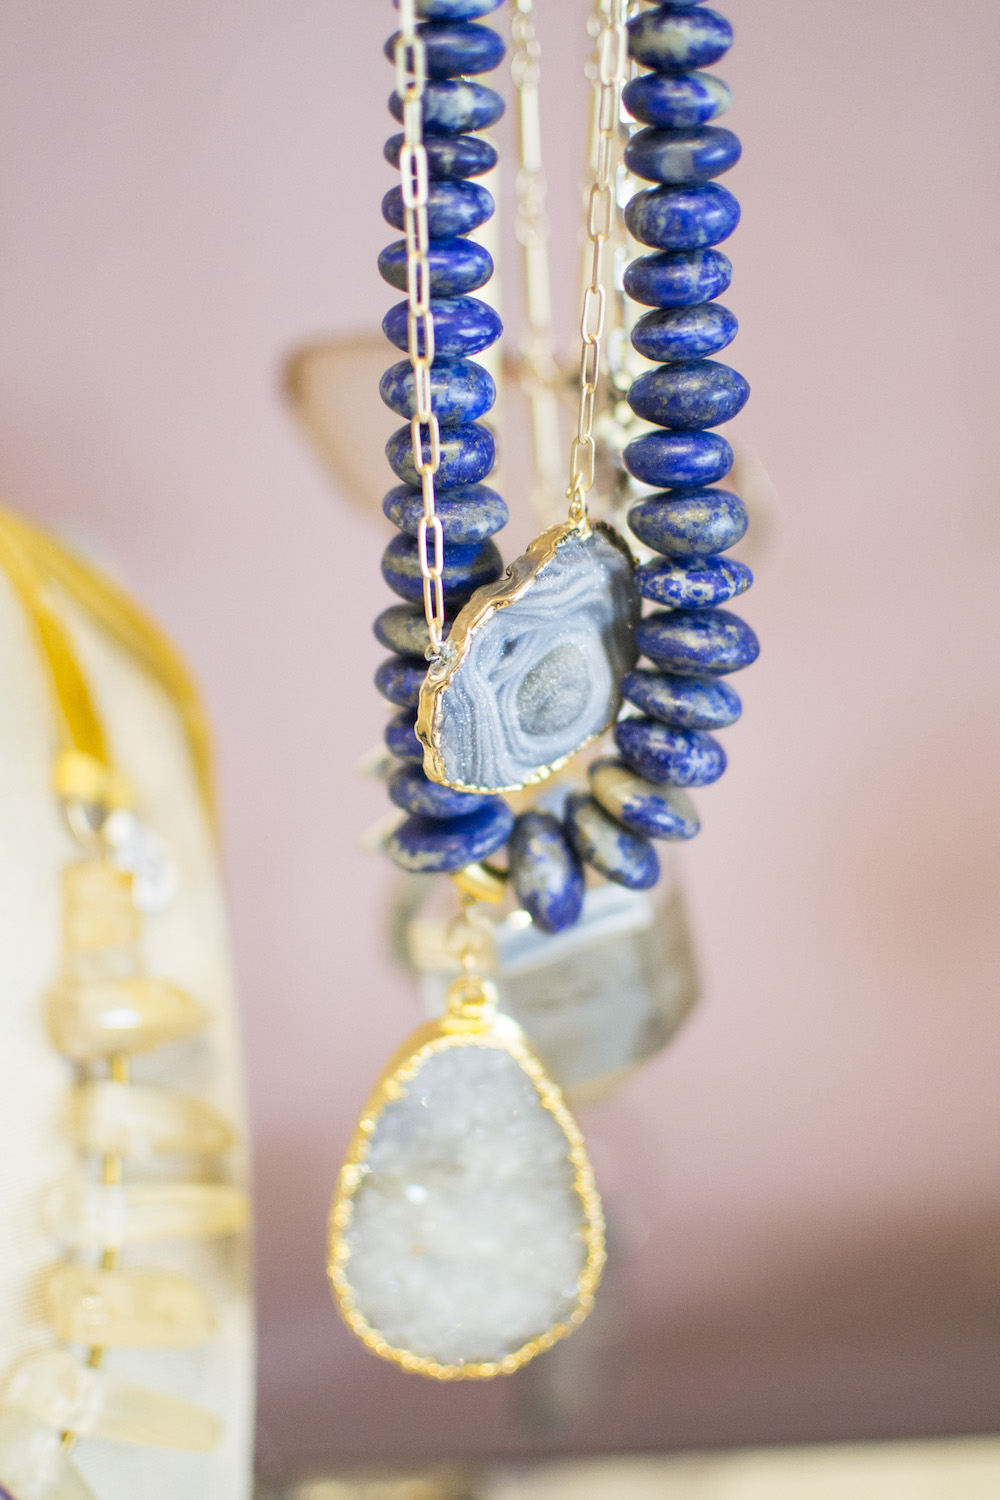 memphis product photography jewelry.jpg